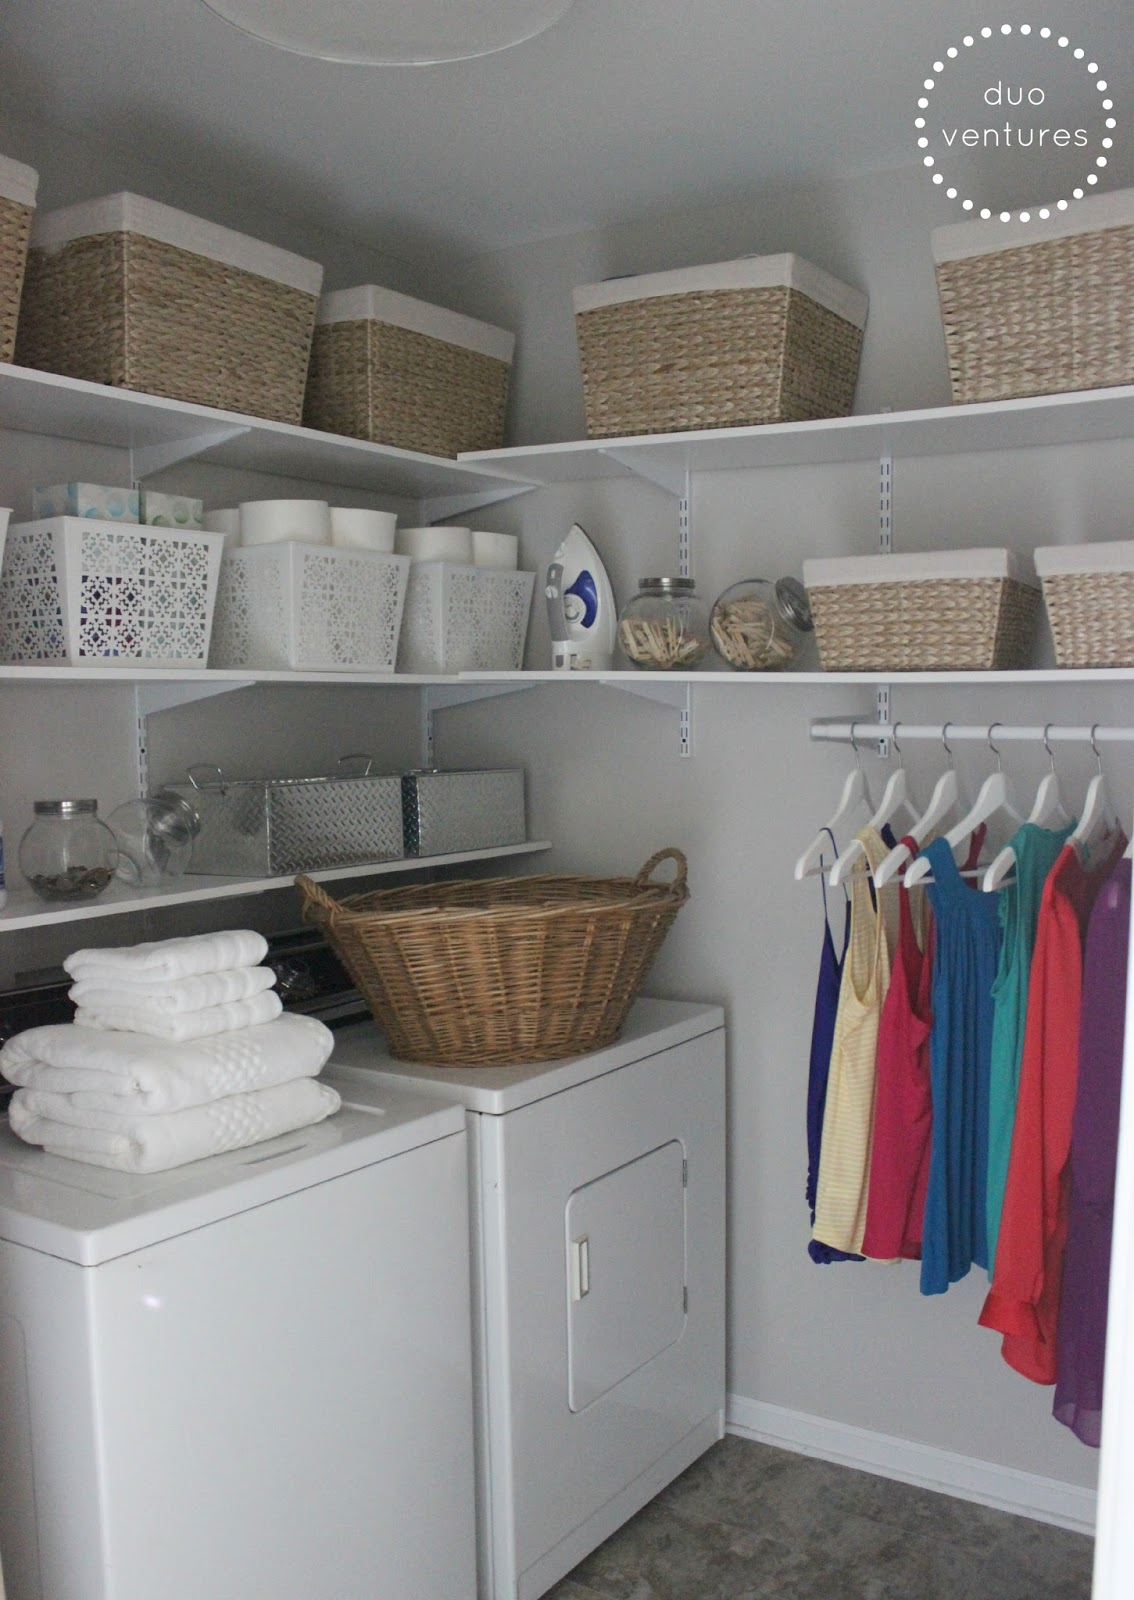 Duo ventures laundry room makeover for Utility room ideas